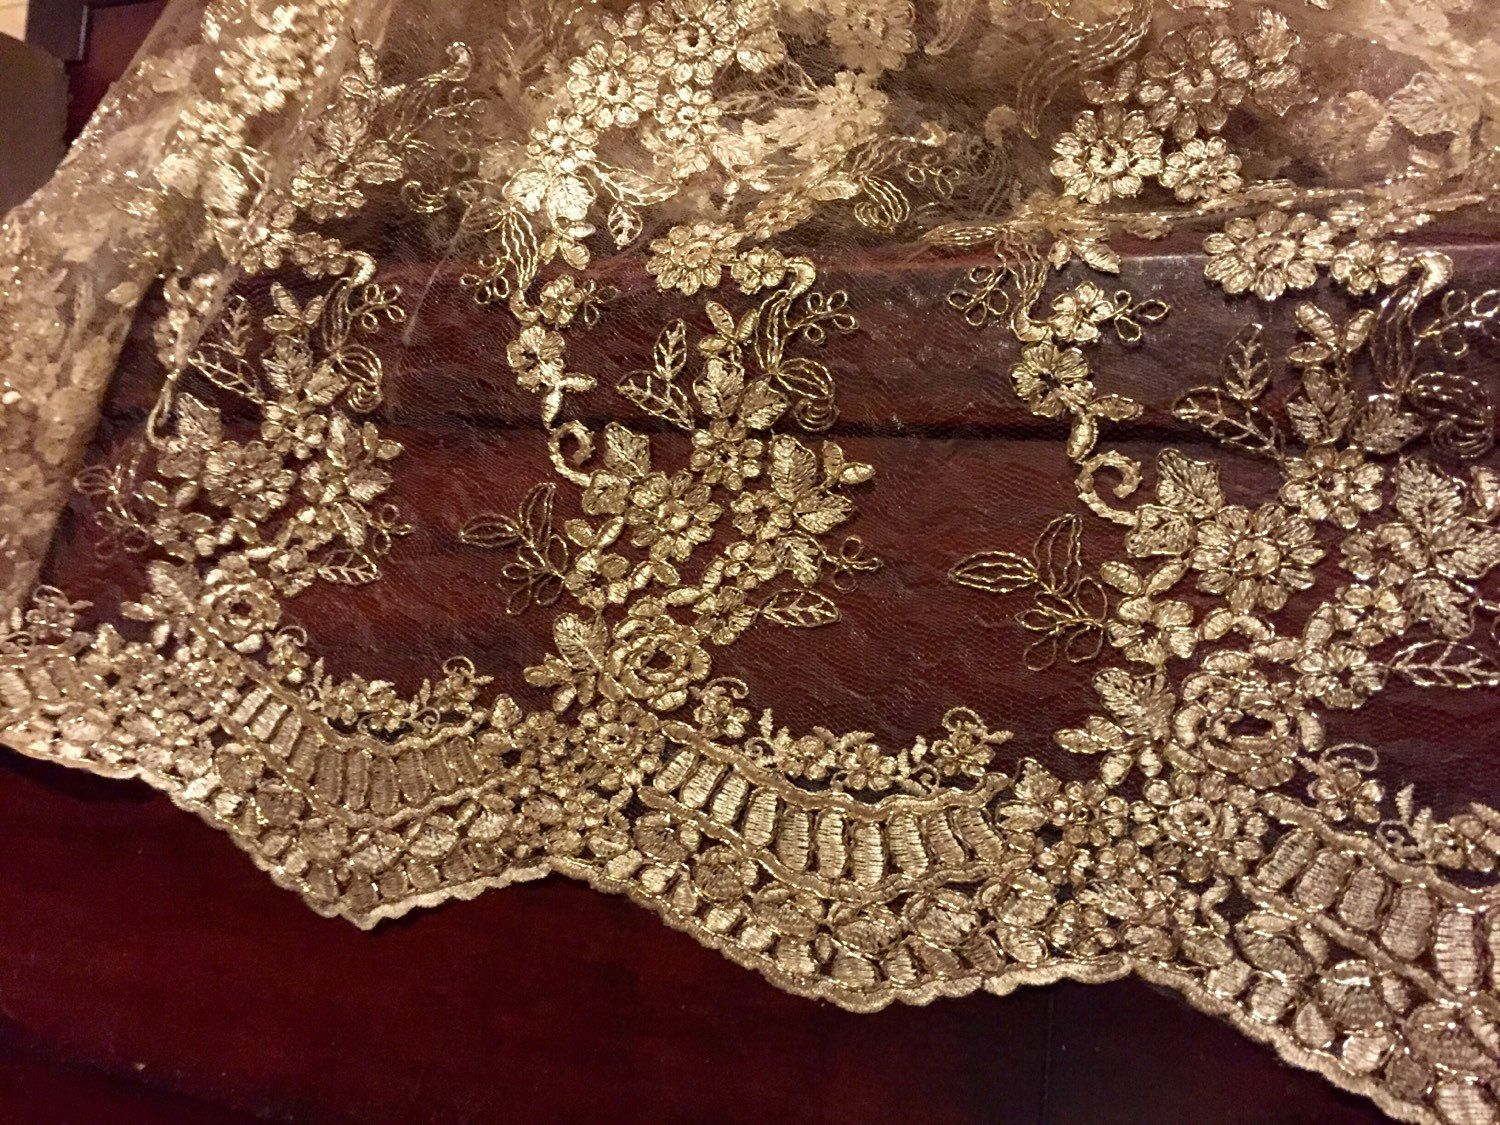 Gold Embroidered Lace Table Runner, Gold Tablecloth, Table Overlay, Home